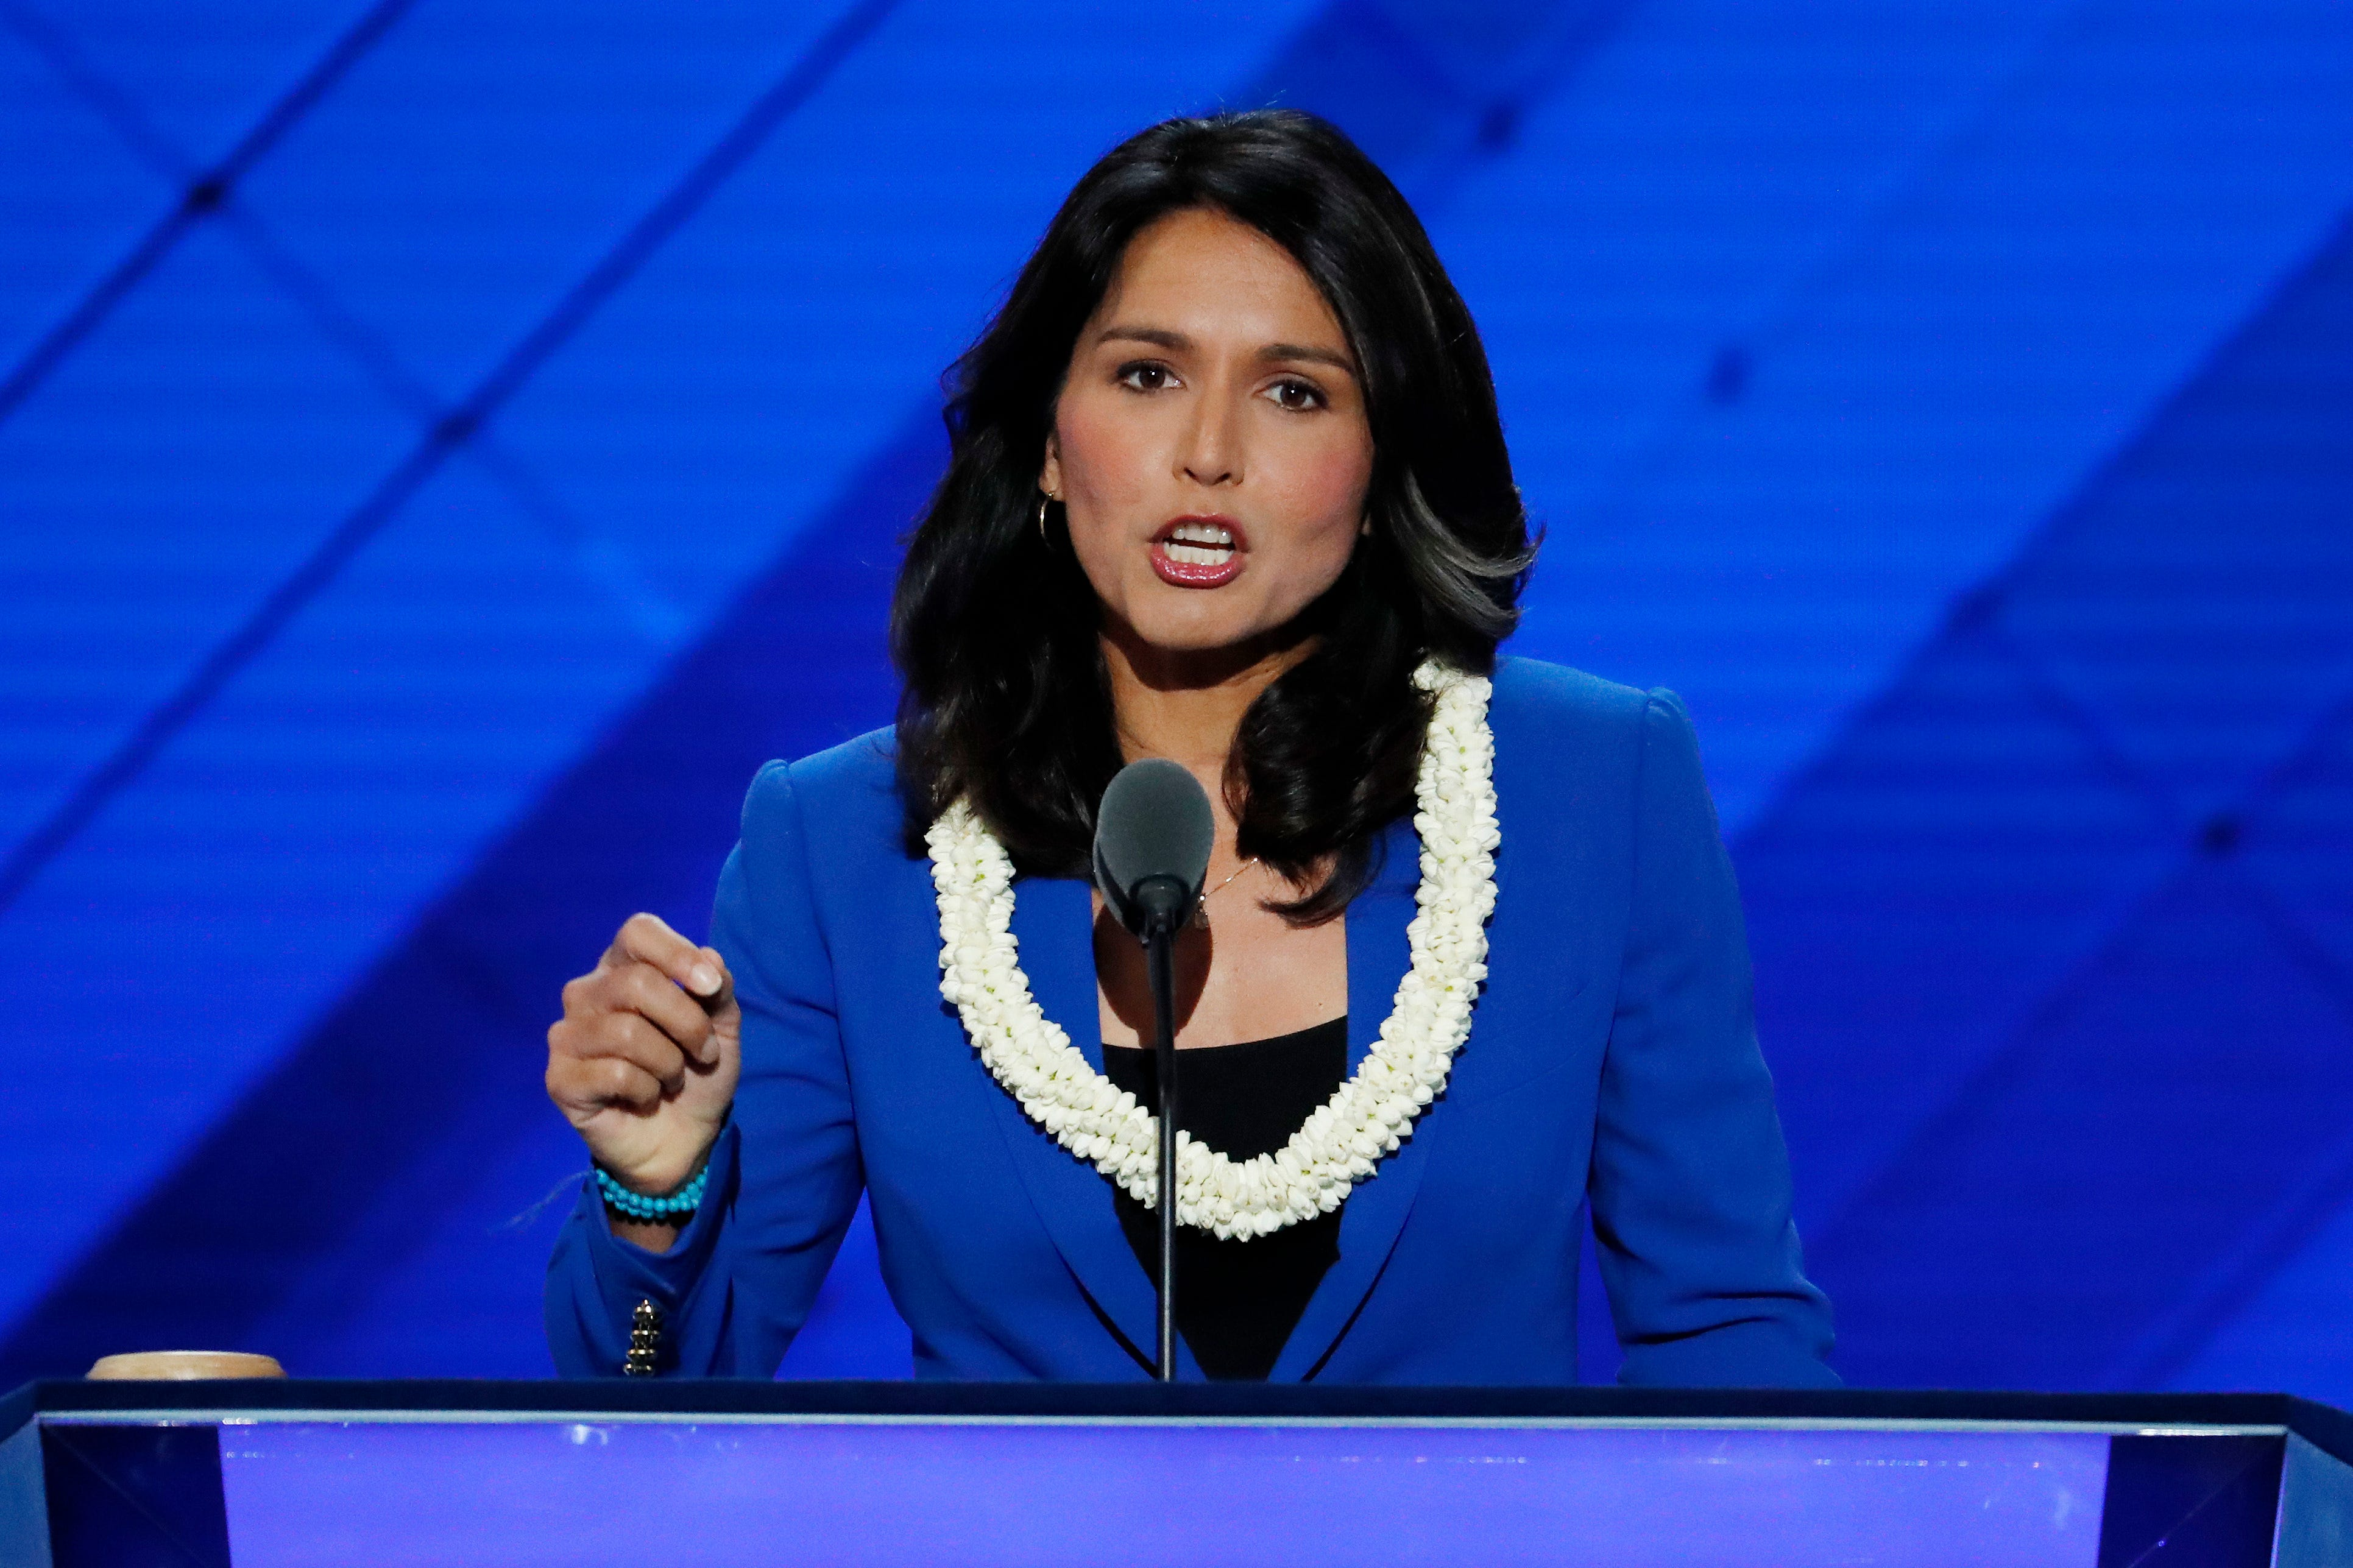 Democrat Tulsi Gabbard announces 2020 run for president to take on Trump